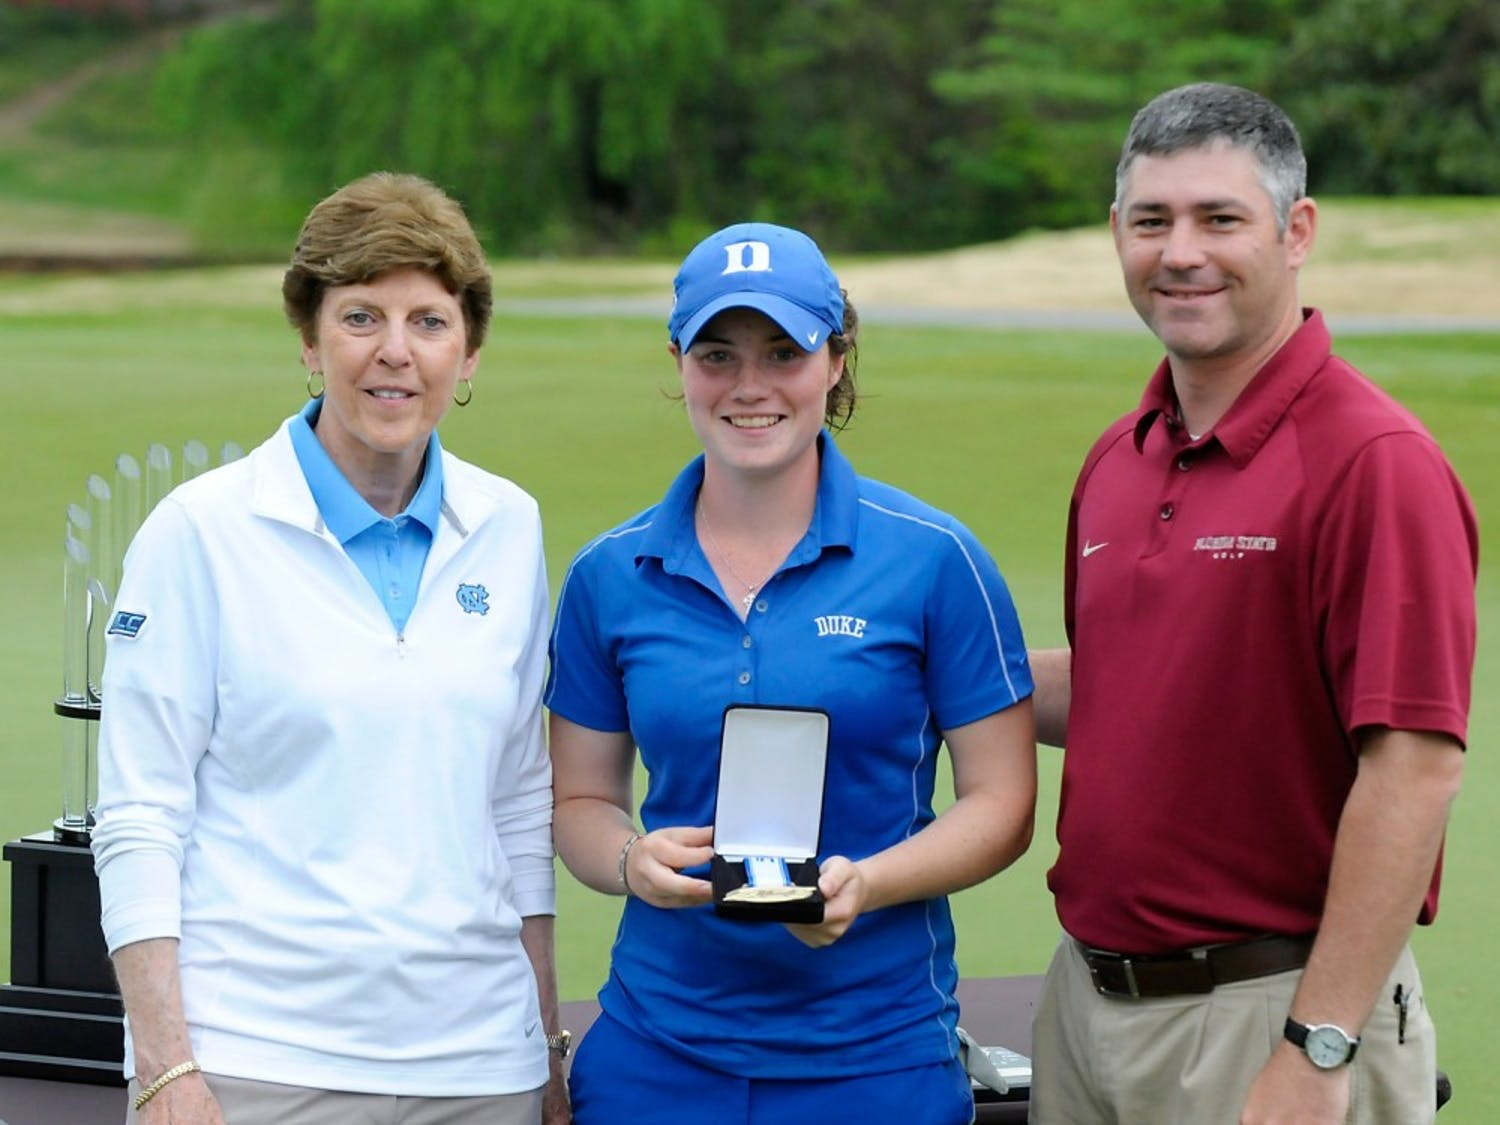 Duke's Leona Maguire is awarded first place at the 2015 ACC Women's Golf Championship in Greensboro, N.C., April. 18, 2015. (Photo by Sara D. Davis, theACC.com)